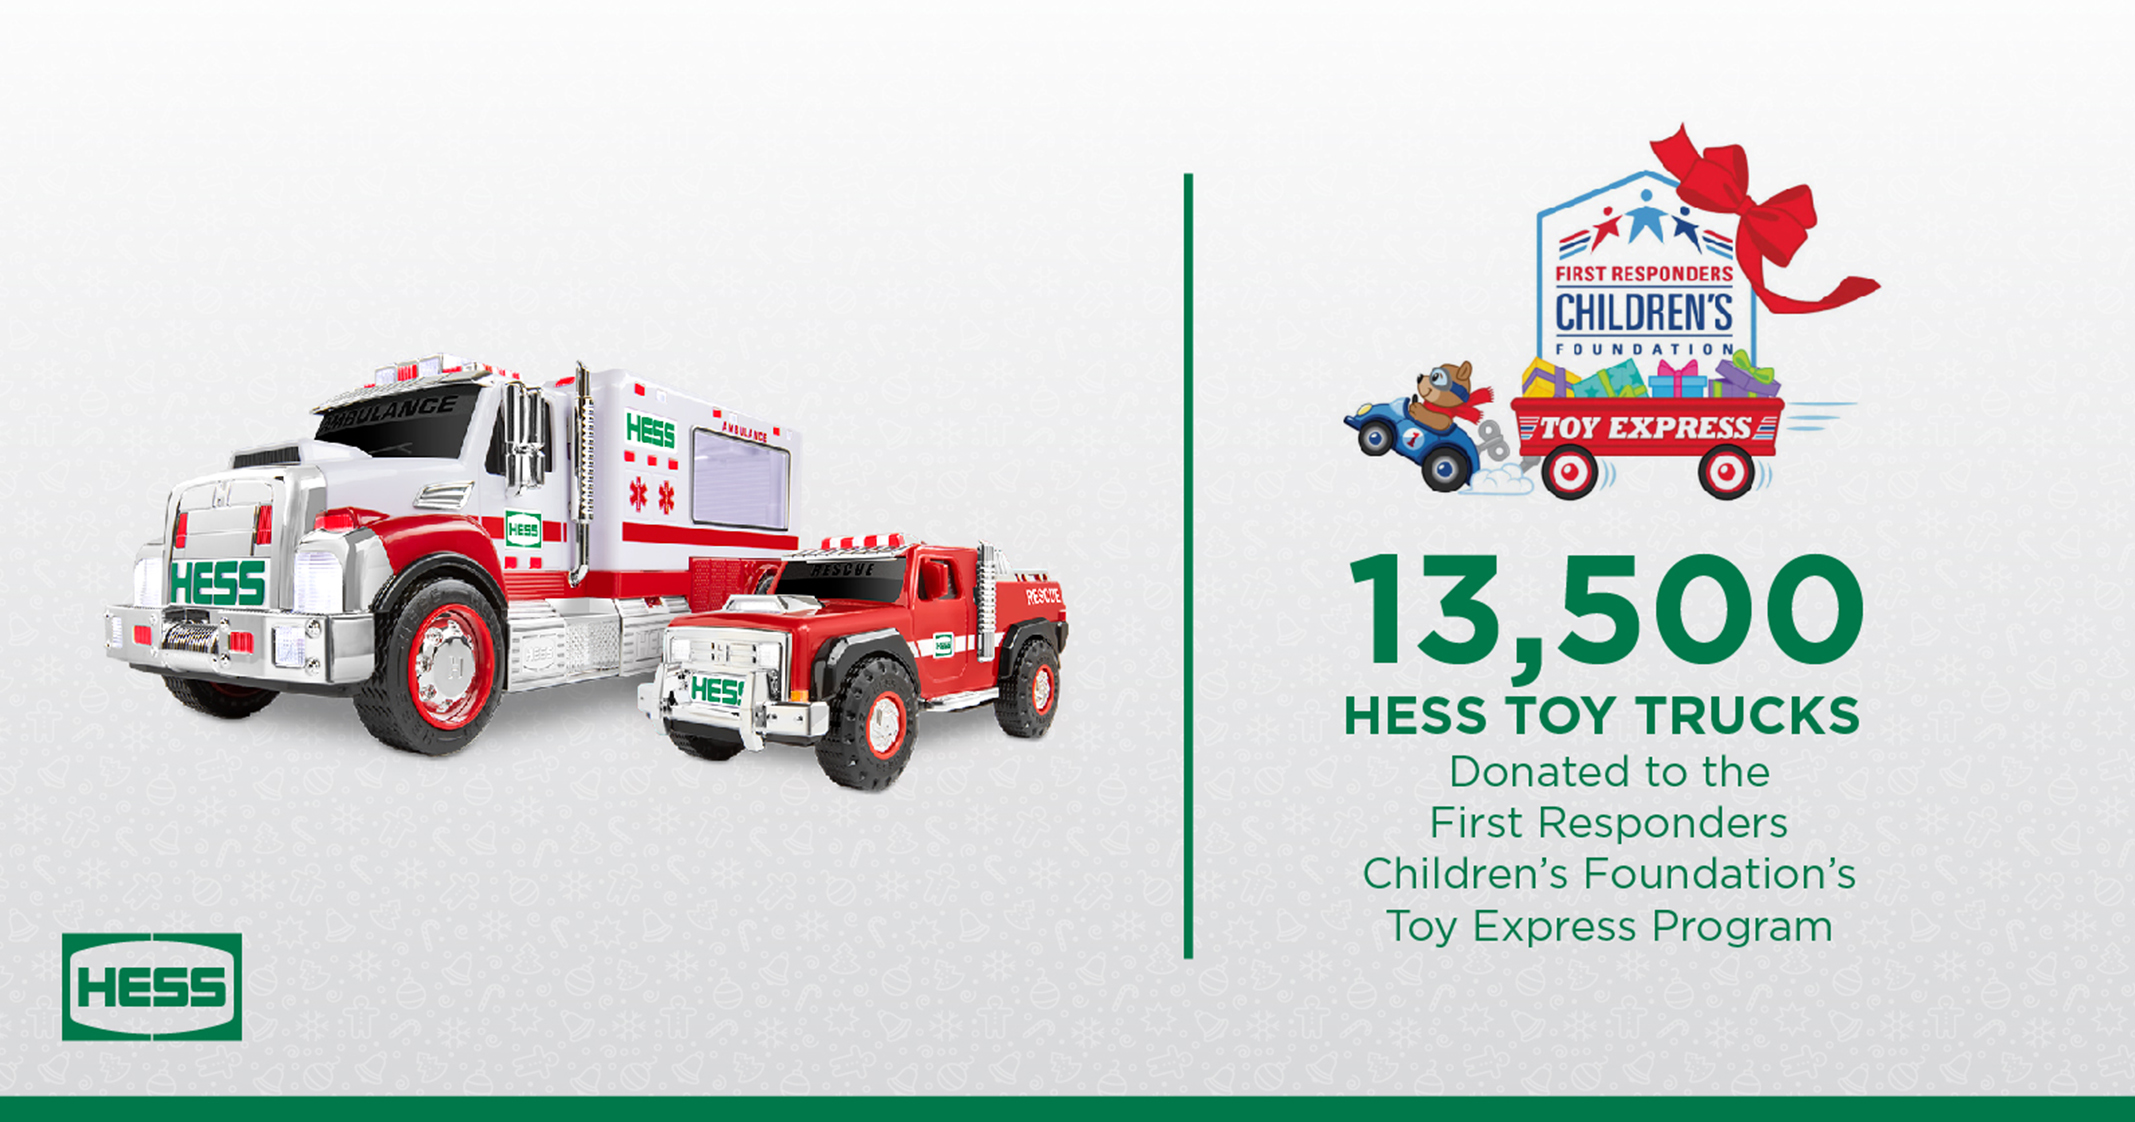 HESS - Community - First Responders Toy Truck Donation